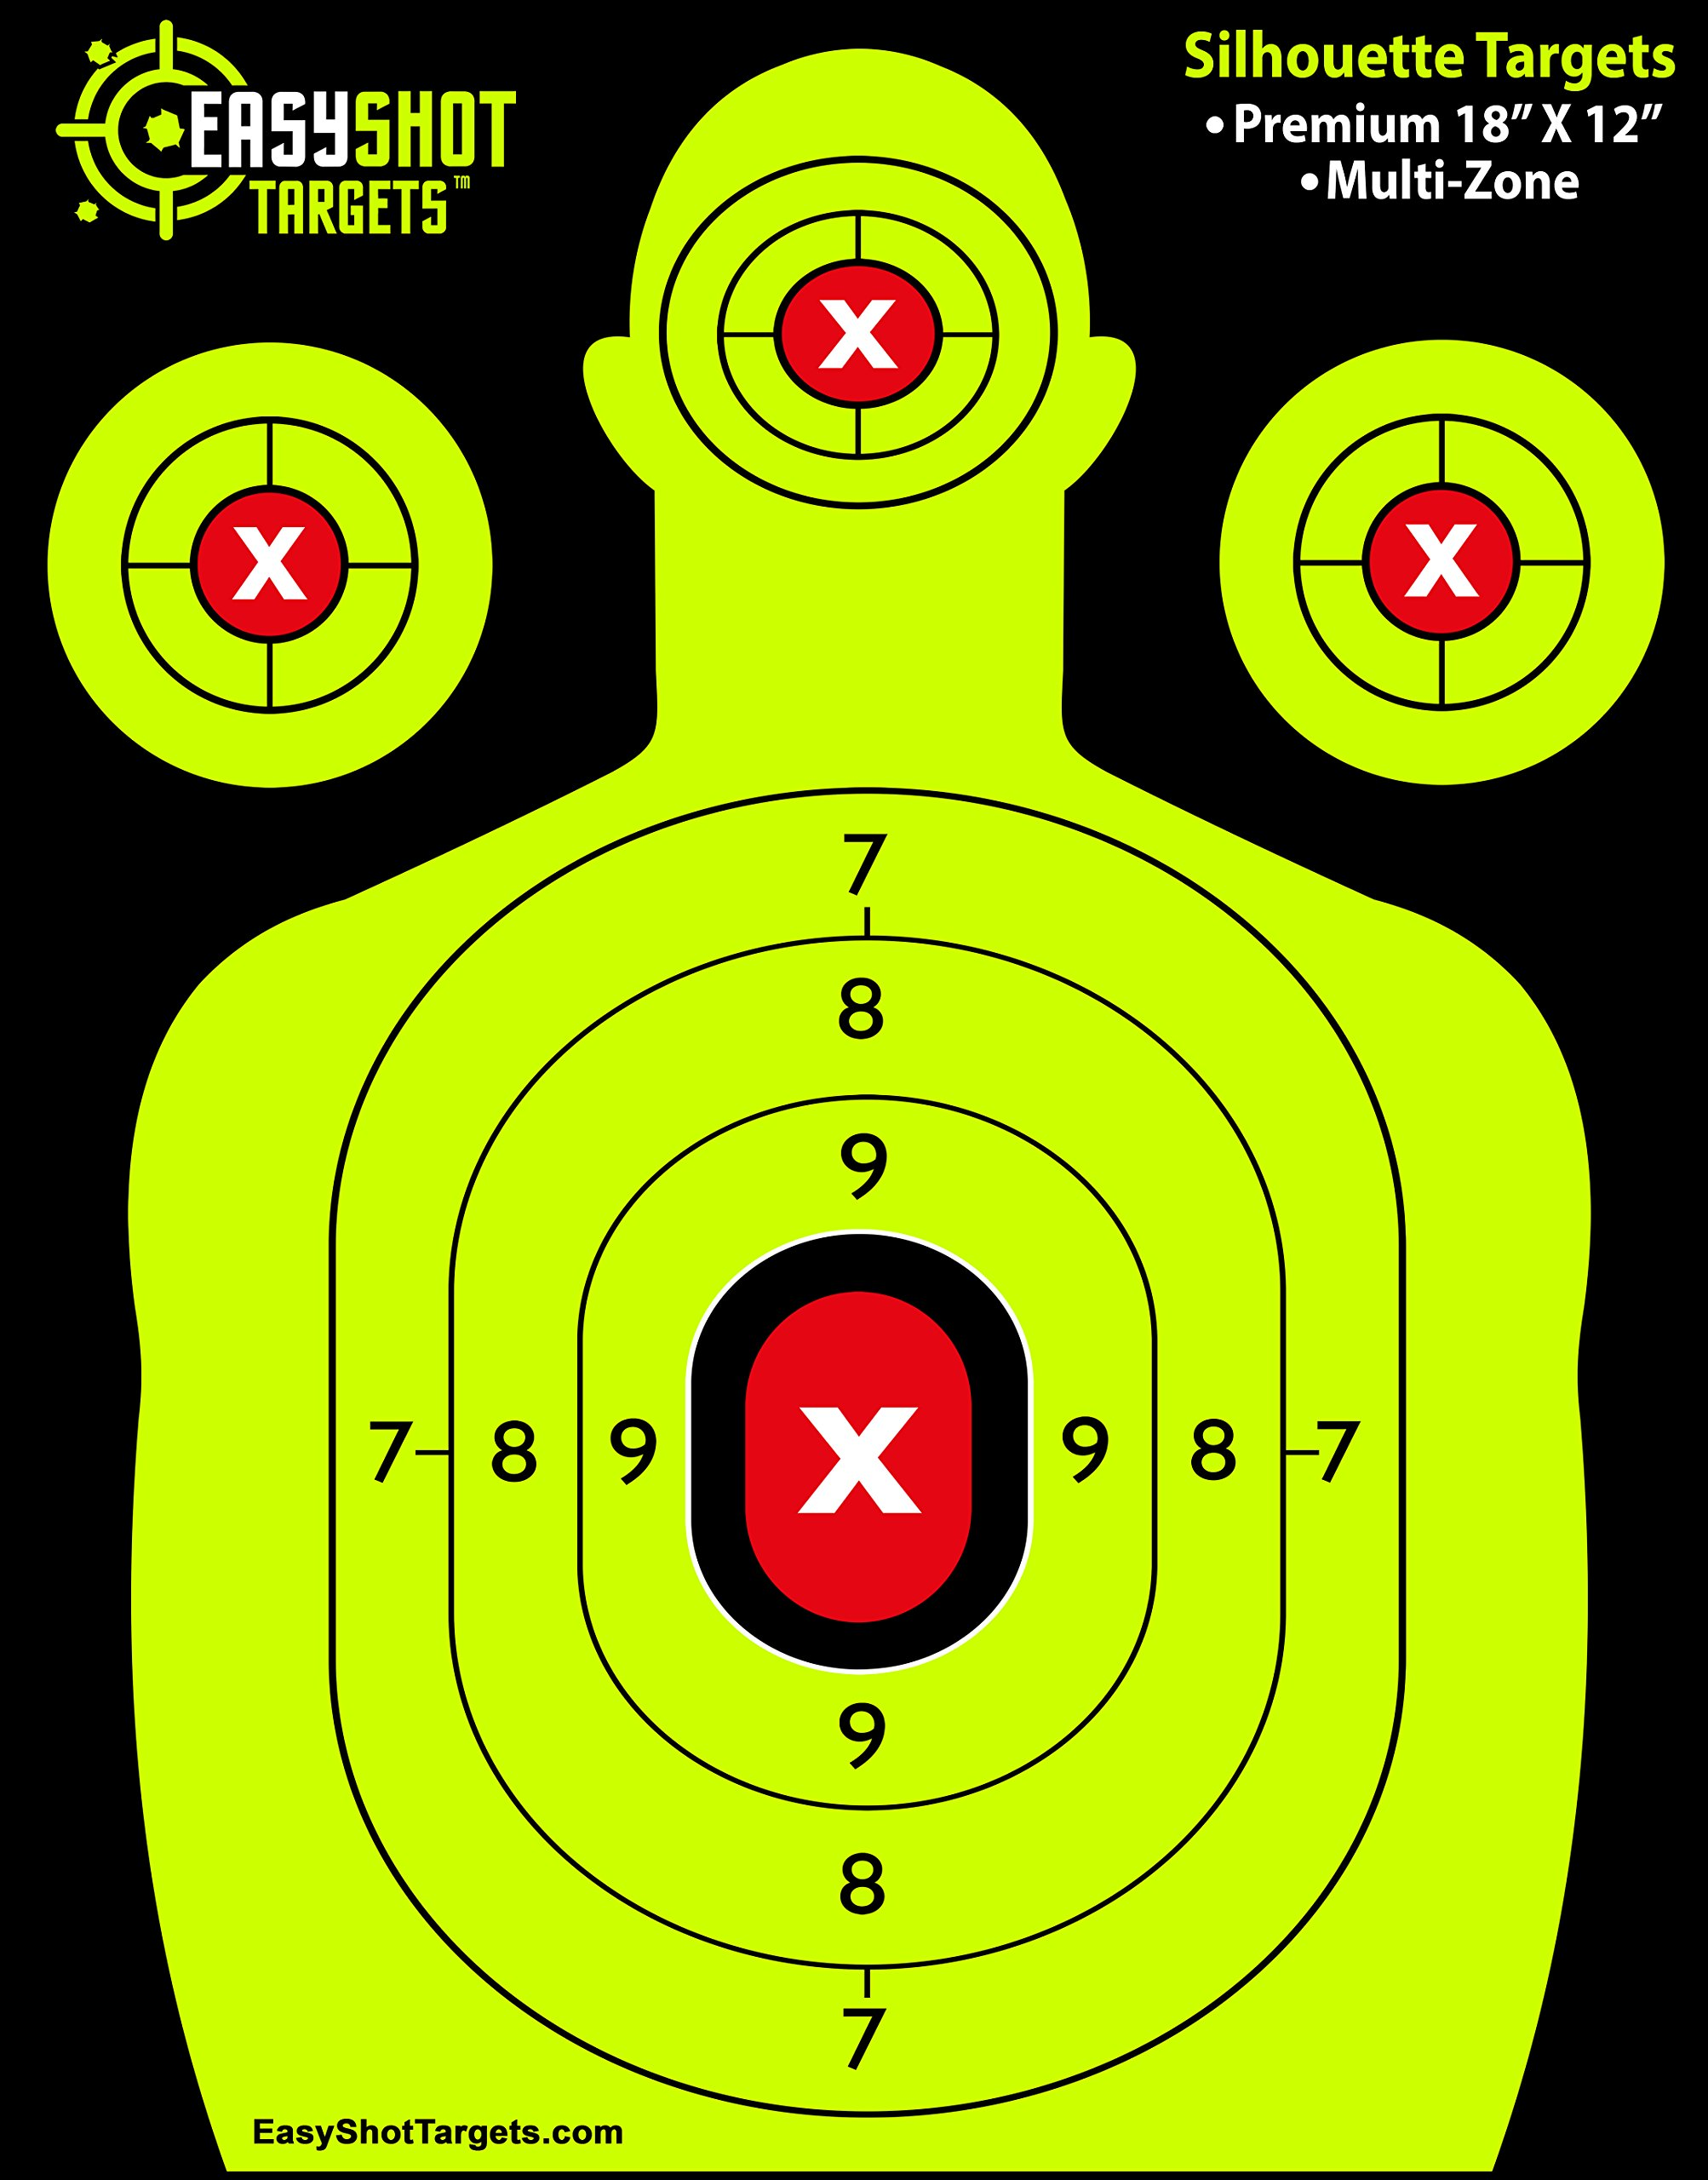 EASYSHOT Shooting Targets 18 X 12 inch. Shots are Easy to See with Our High-Vis Neon Yellow & Red Colors. Thick Silhouette Paper Sheets for Pistols, Rifles, BB Guns, Airsoft, Pellet Guns & More. by EasyShot Targets (Image #1)